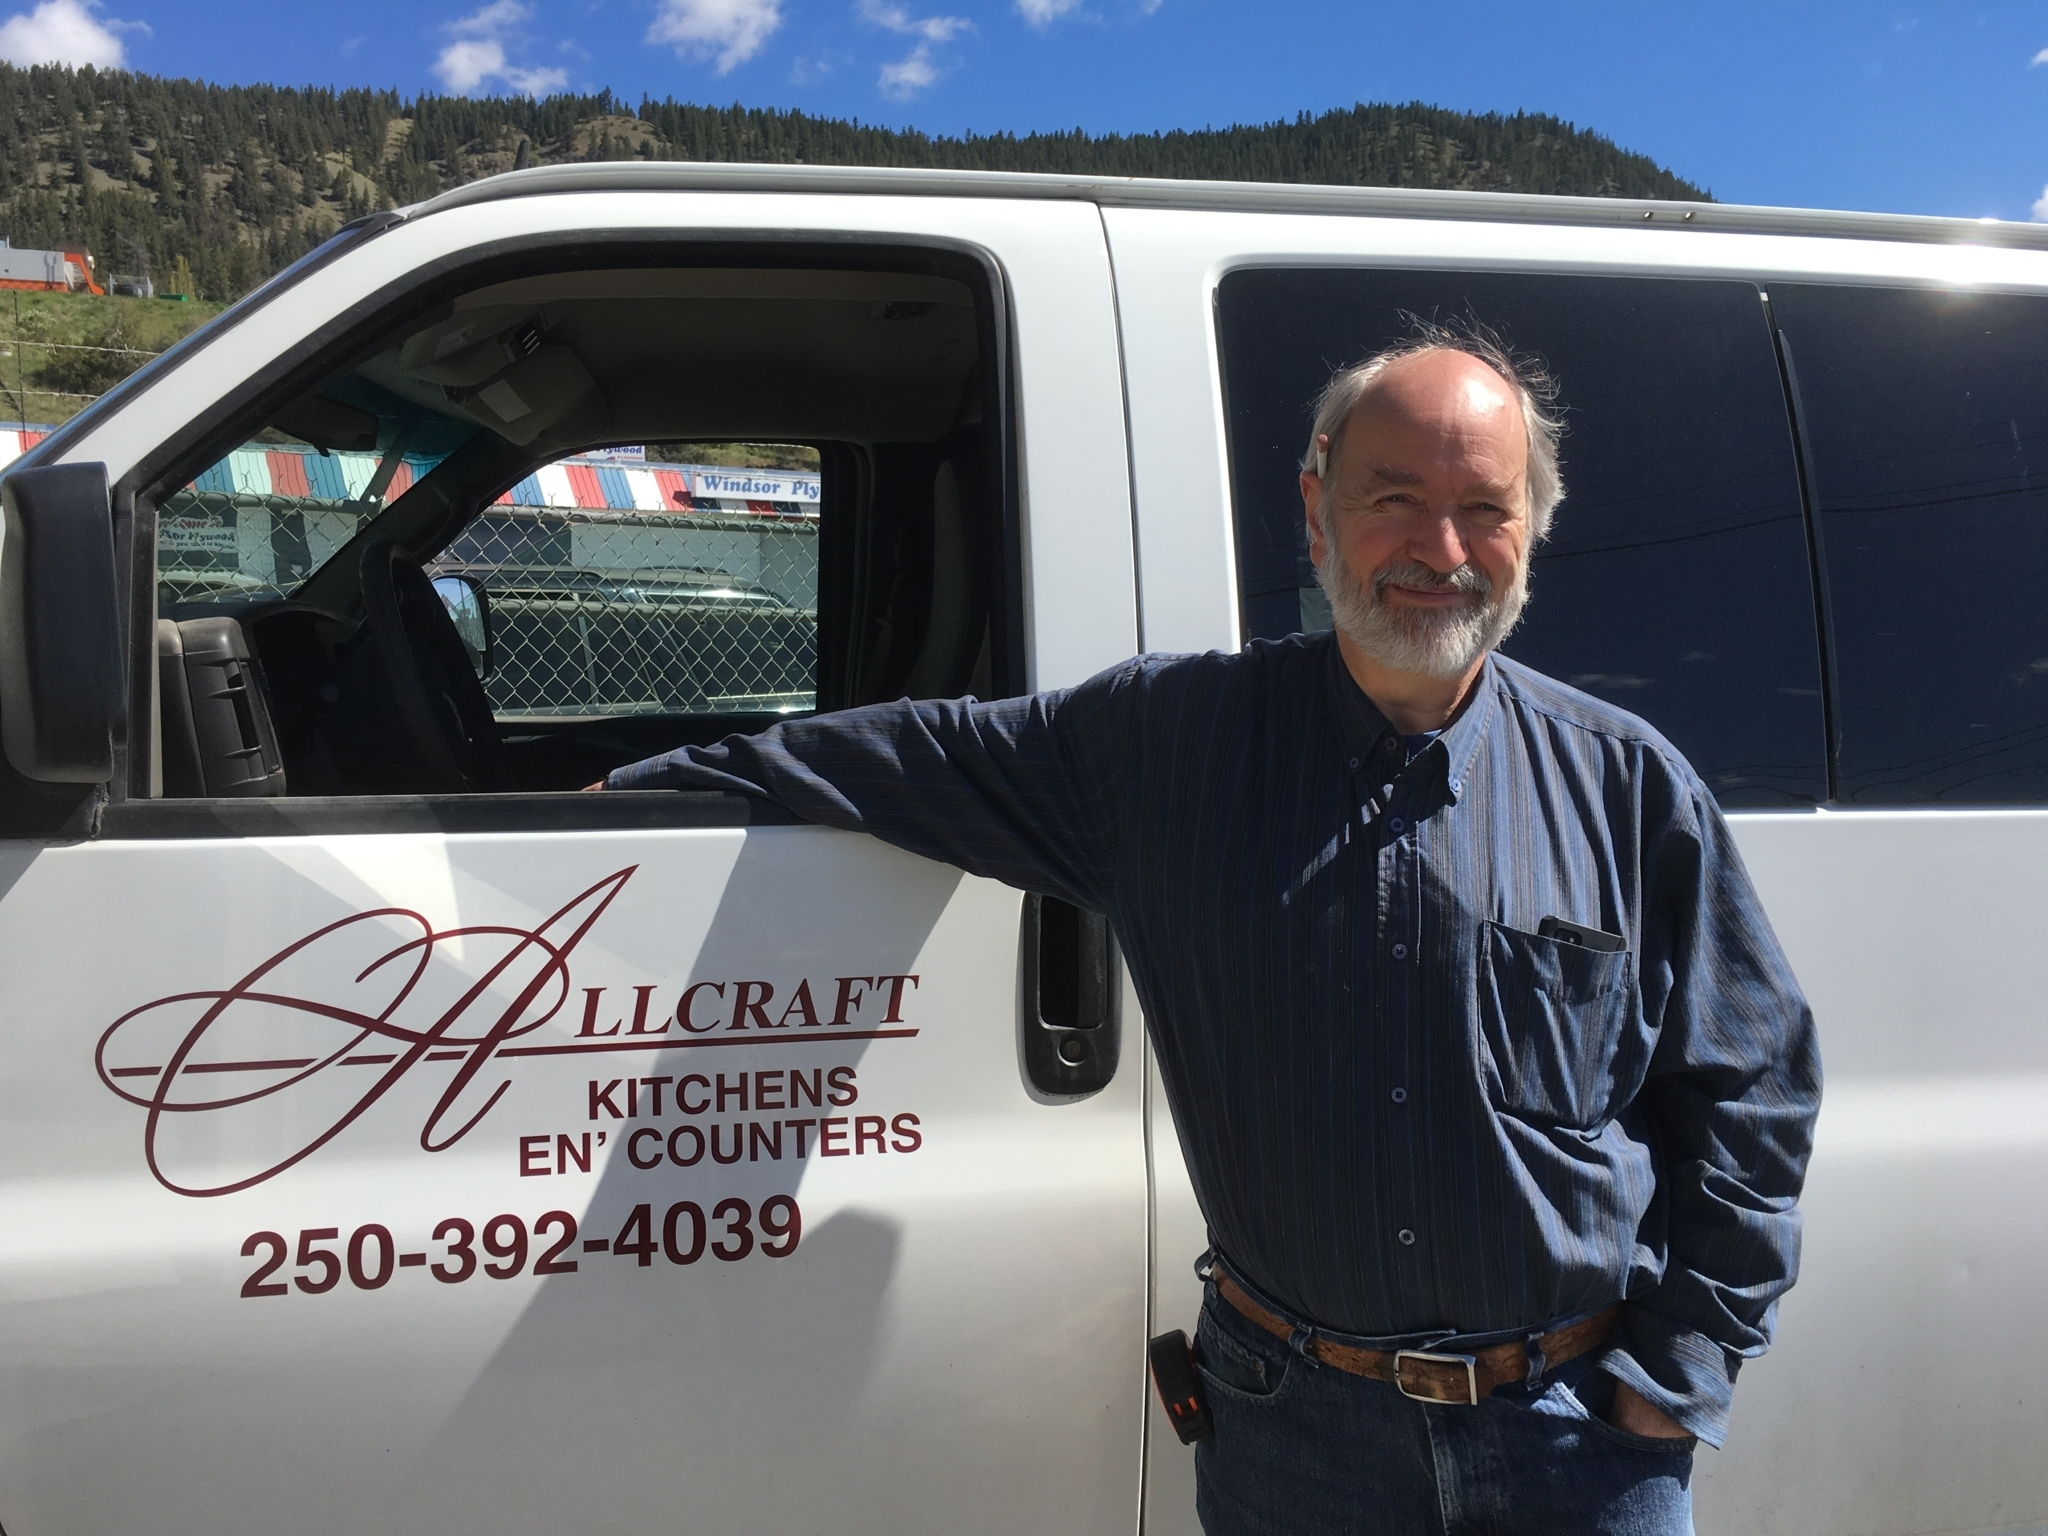 Allcraft Kitchens En' Counters in Williams Lake: Jim the owner from Allcraft Kitchens